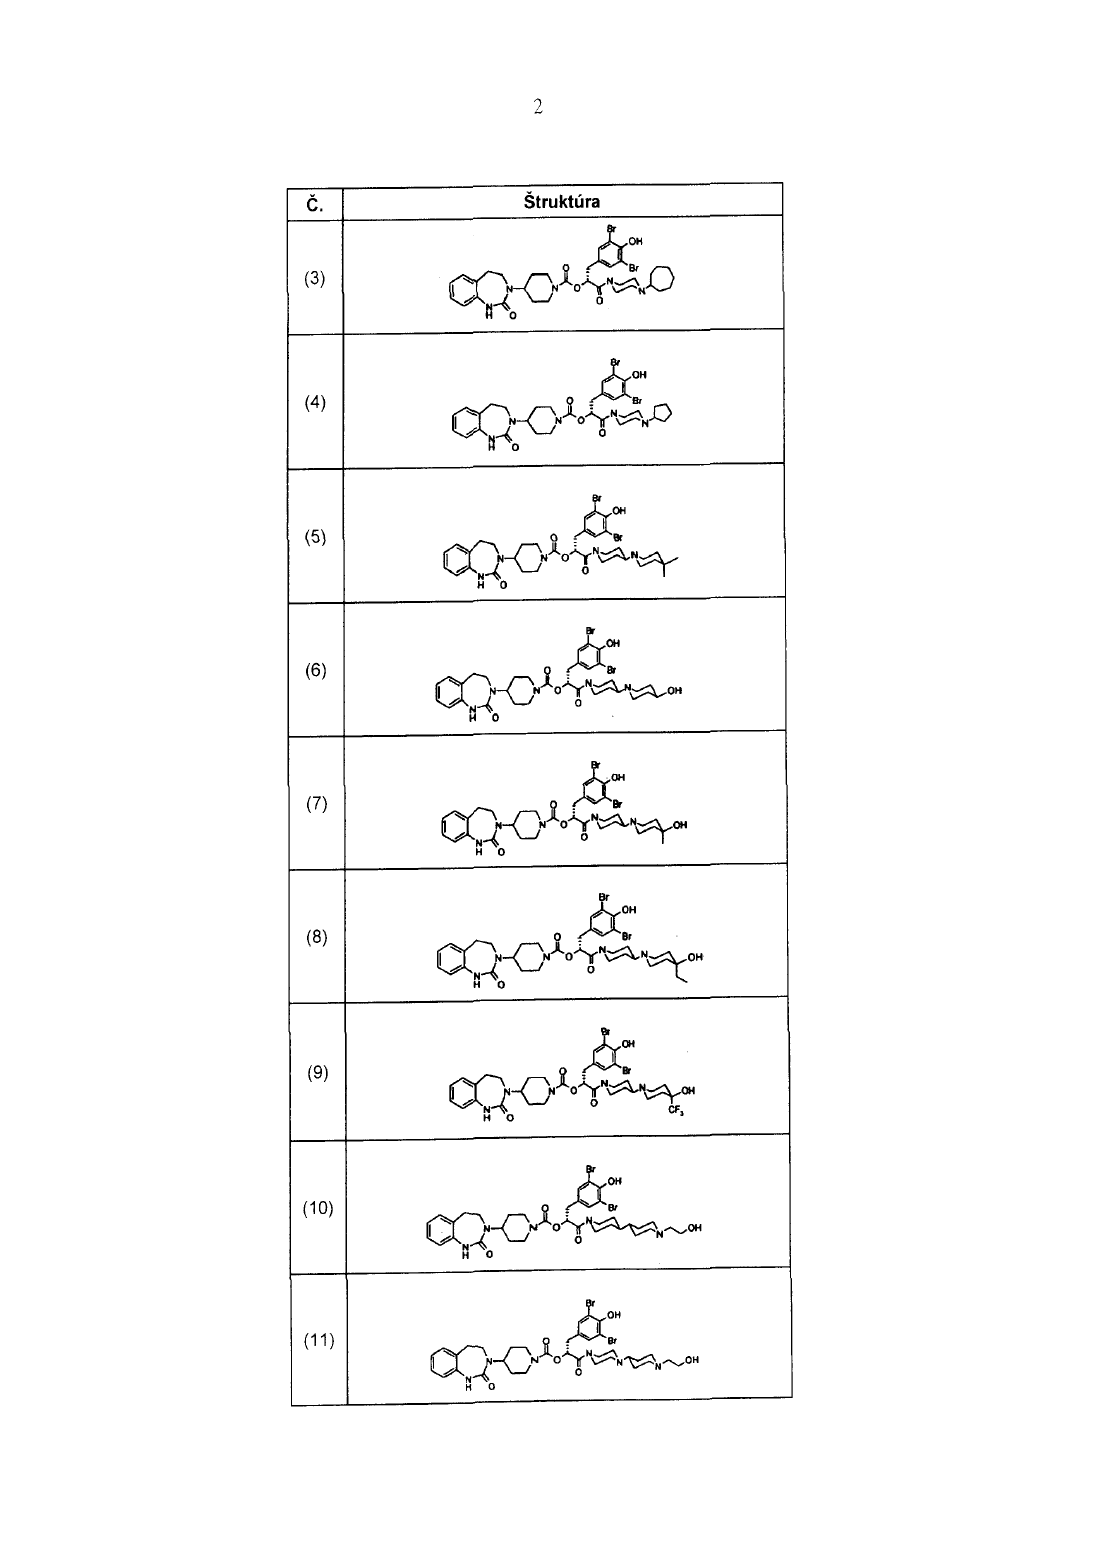 2-oxo-1,2,4,5-tetrahydro-1,3-benzdiazepin-3-yl-piperidíny ako CGRP-antagonisty